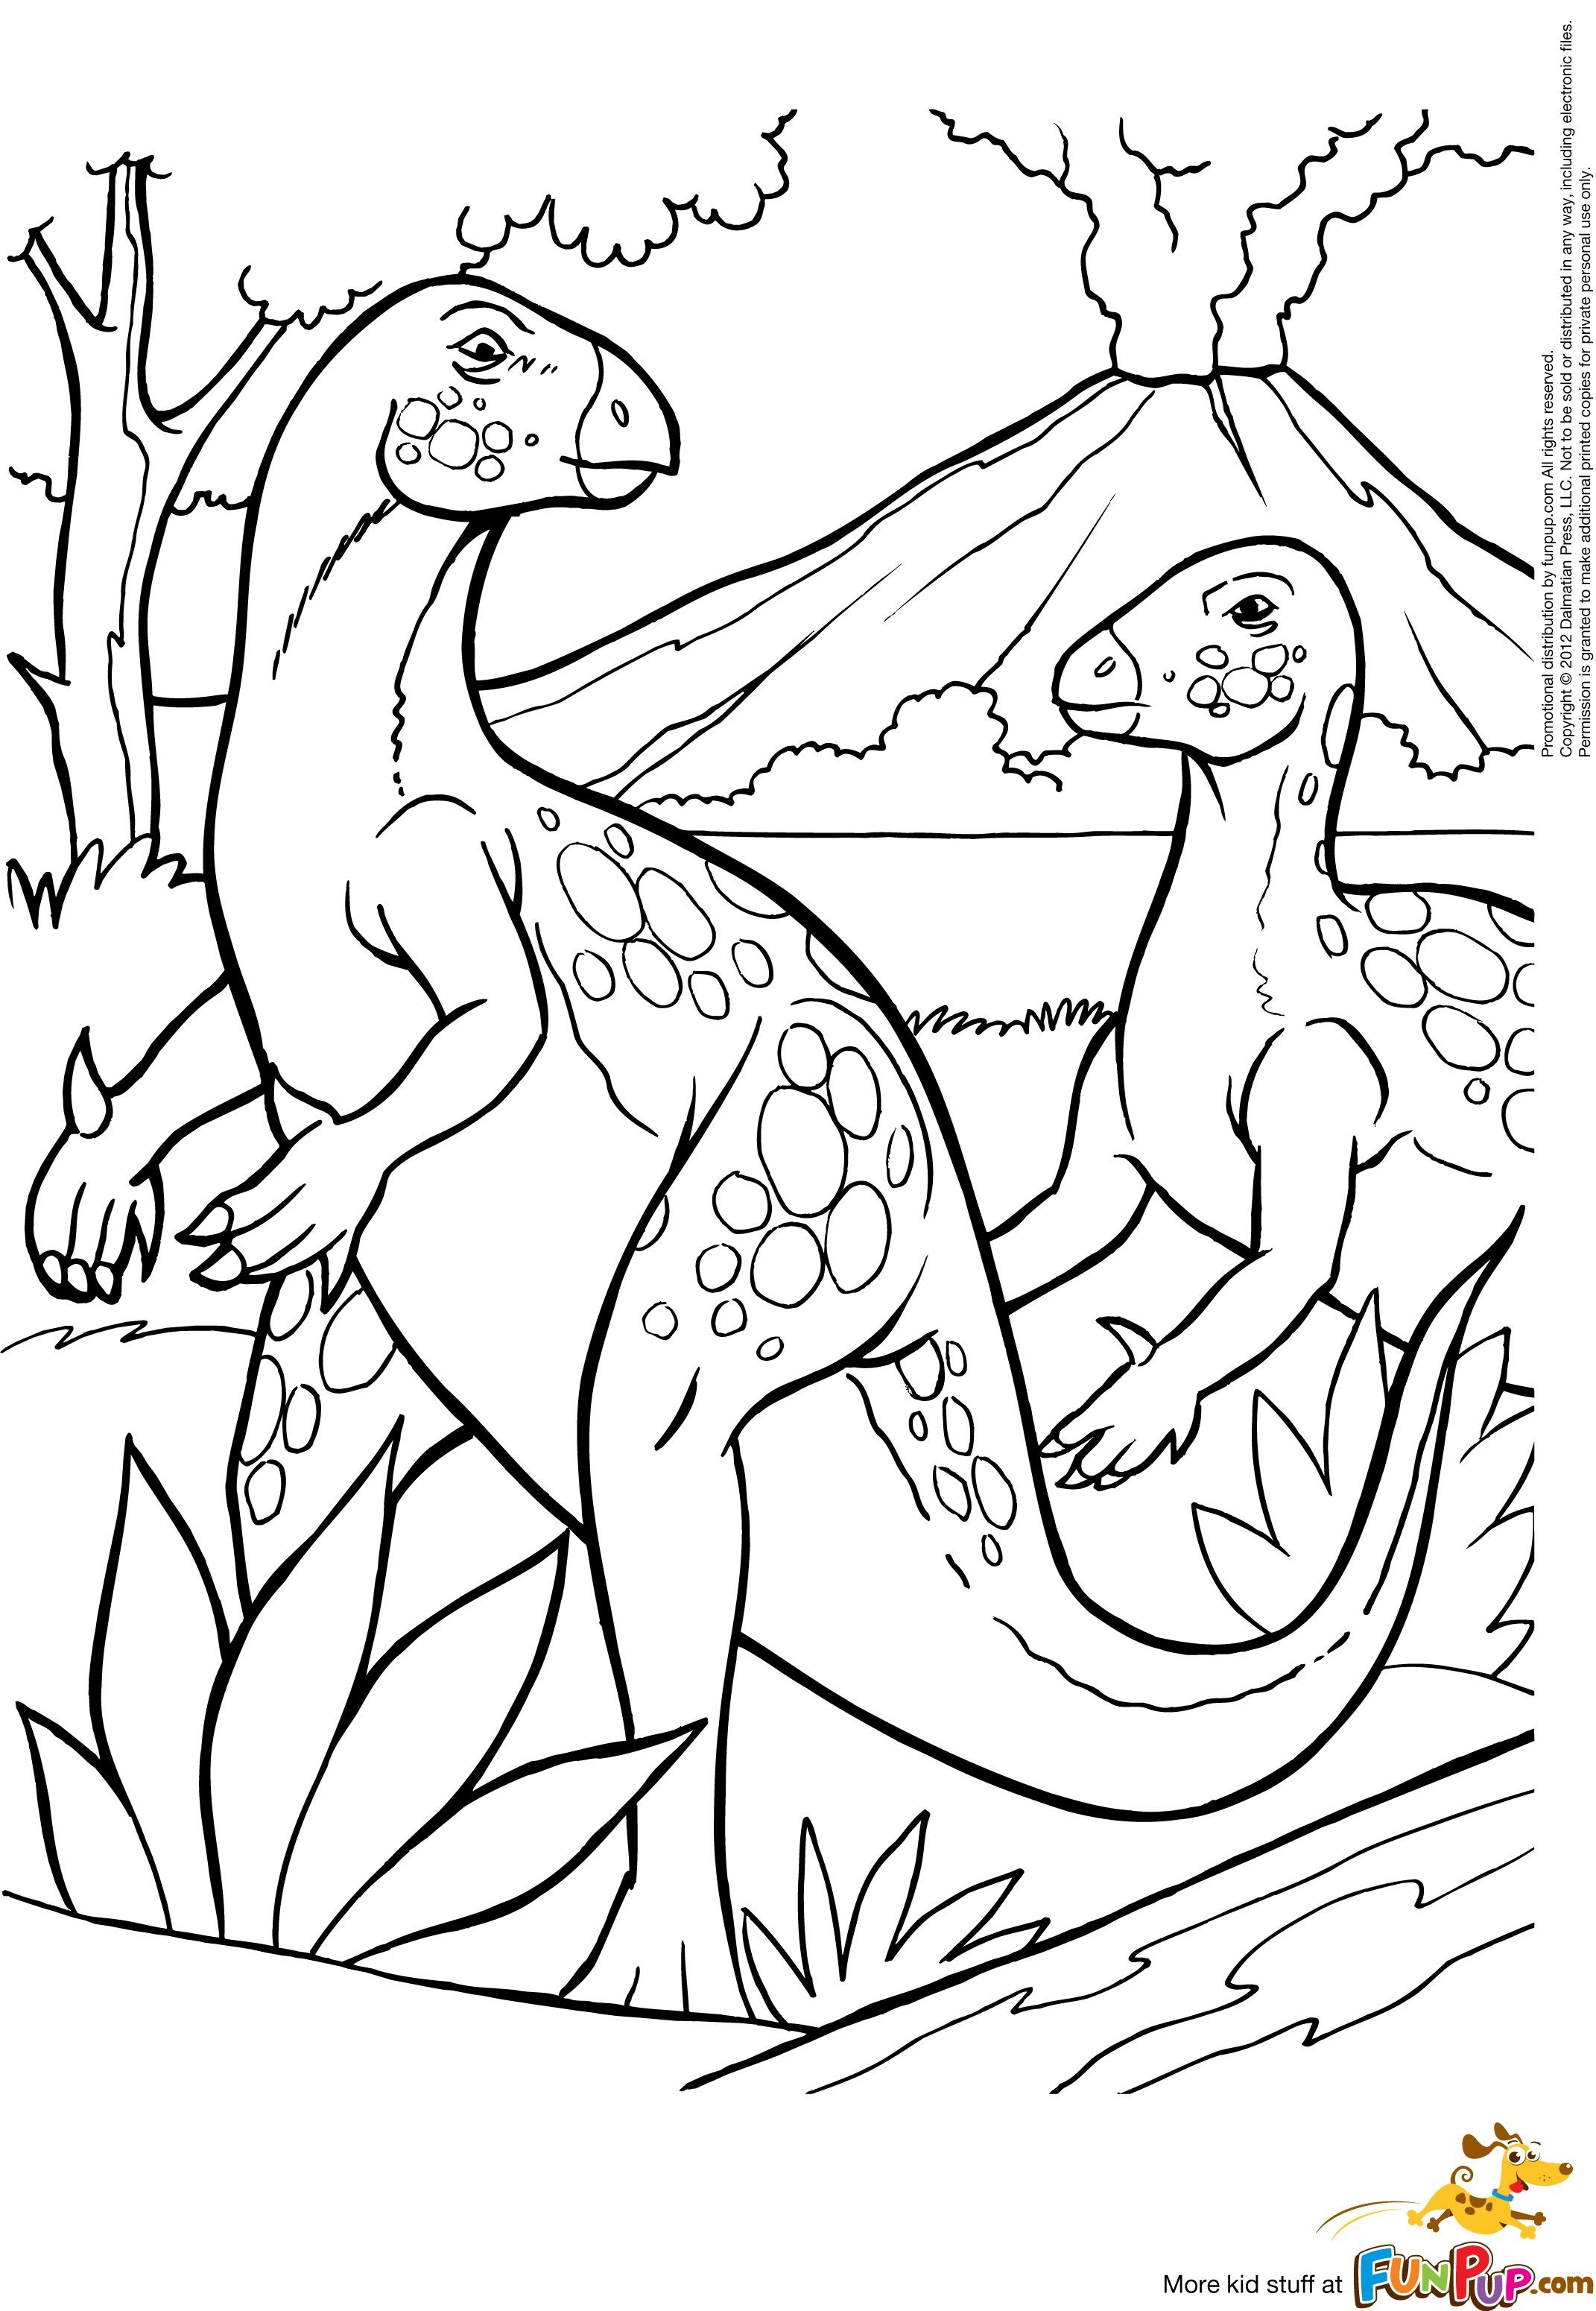 dinosaurs with volcano oma ov nky pinterest activities coloring pages and coloring. Black Bedroom Furniture Sets. Home Design Ideas